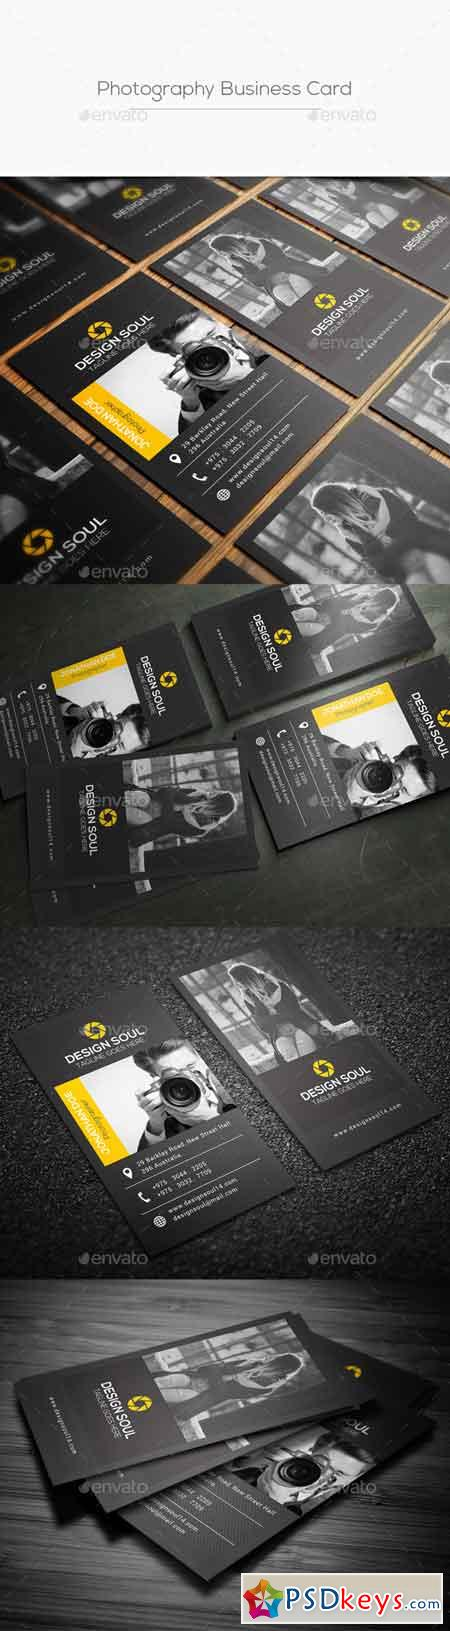 Photography Business Card 21730116